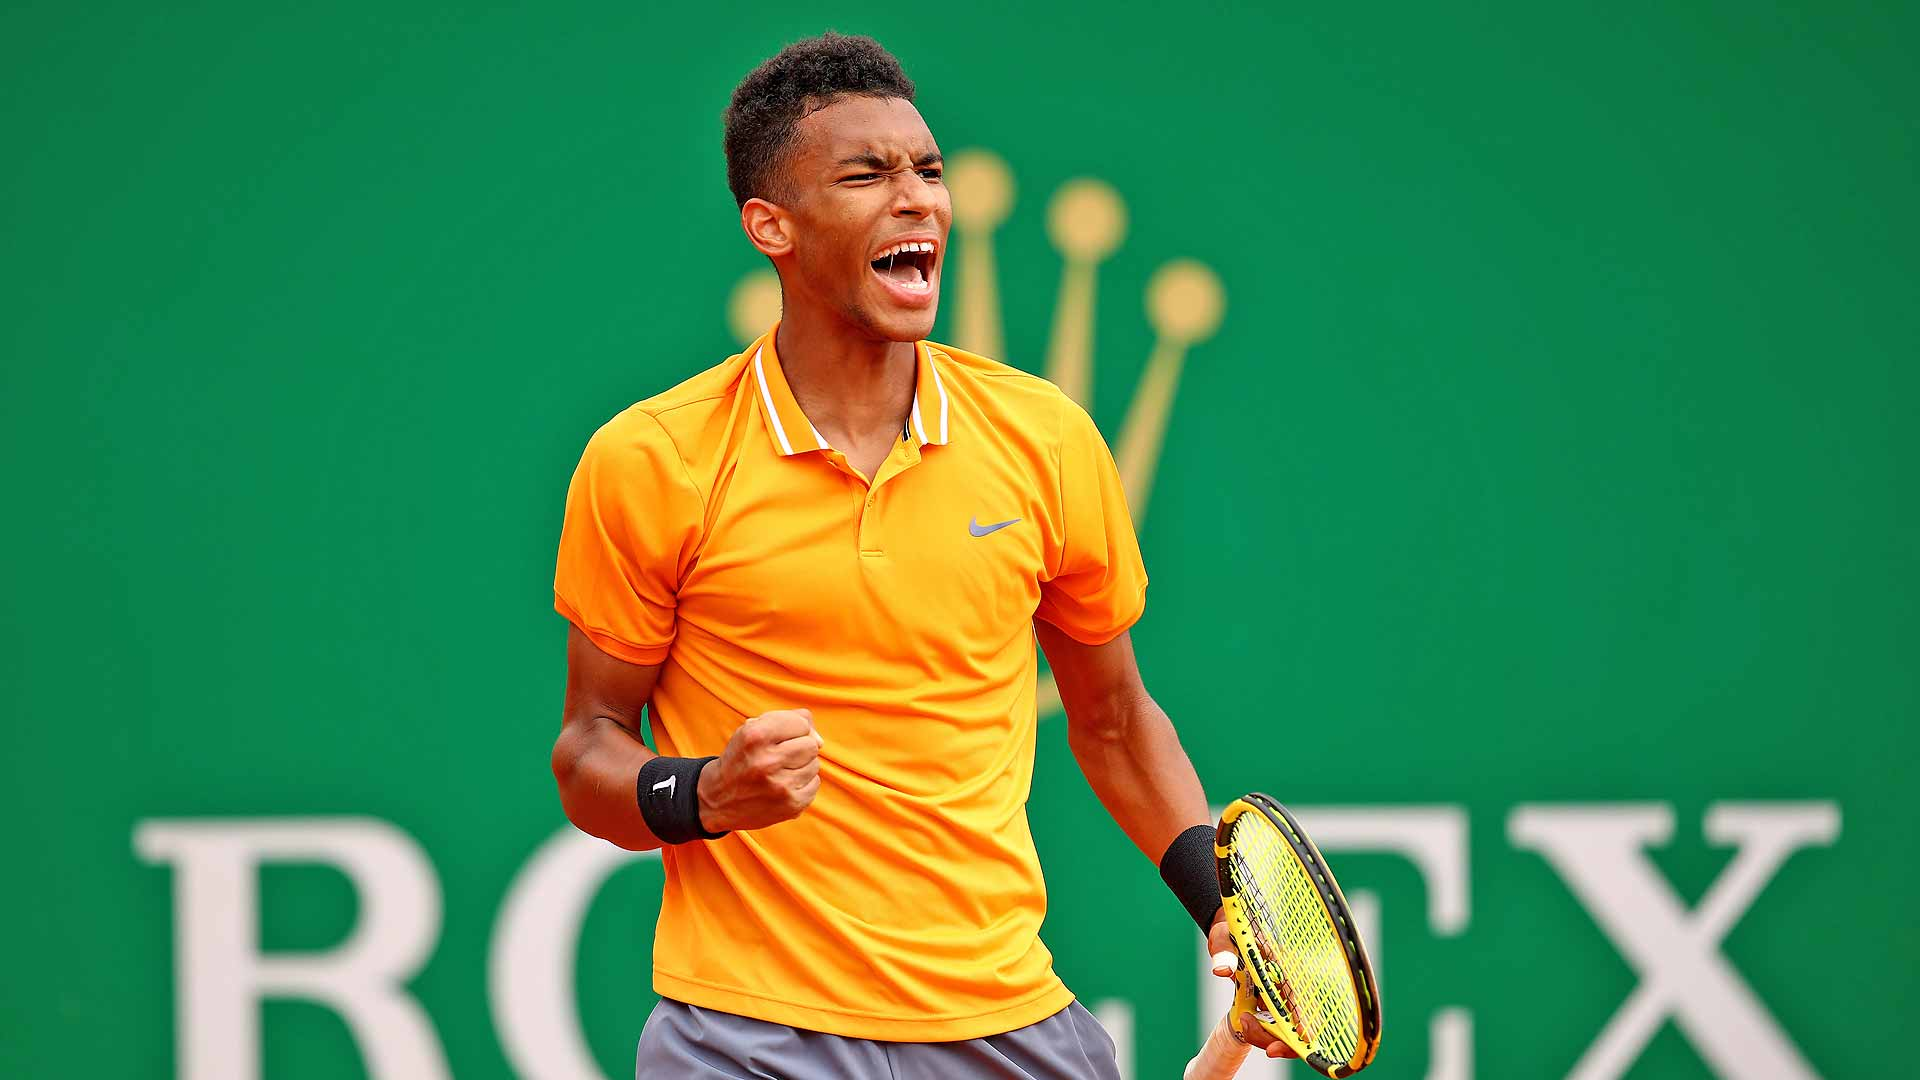 Felix Auger-Aliassime celebrates a point in Monte-Carlo